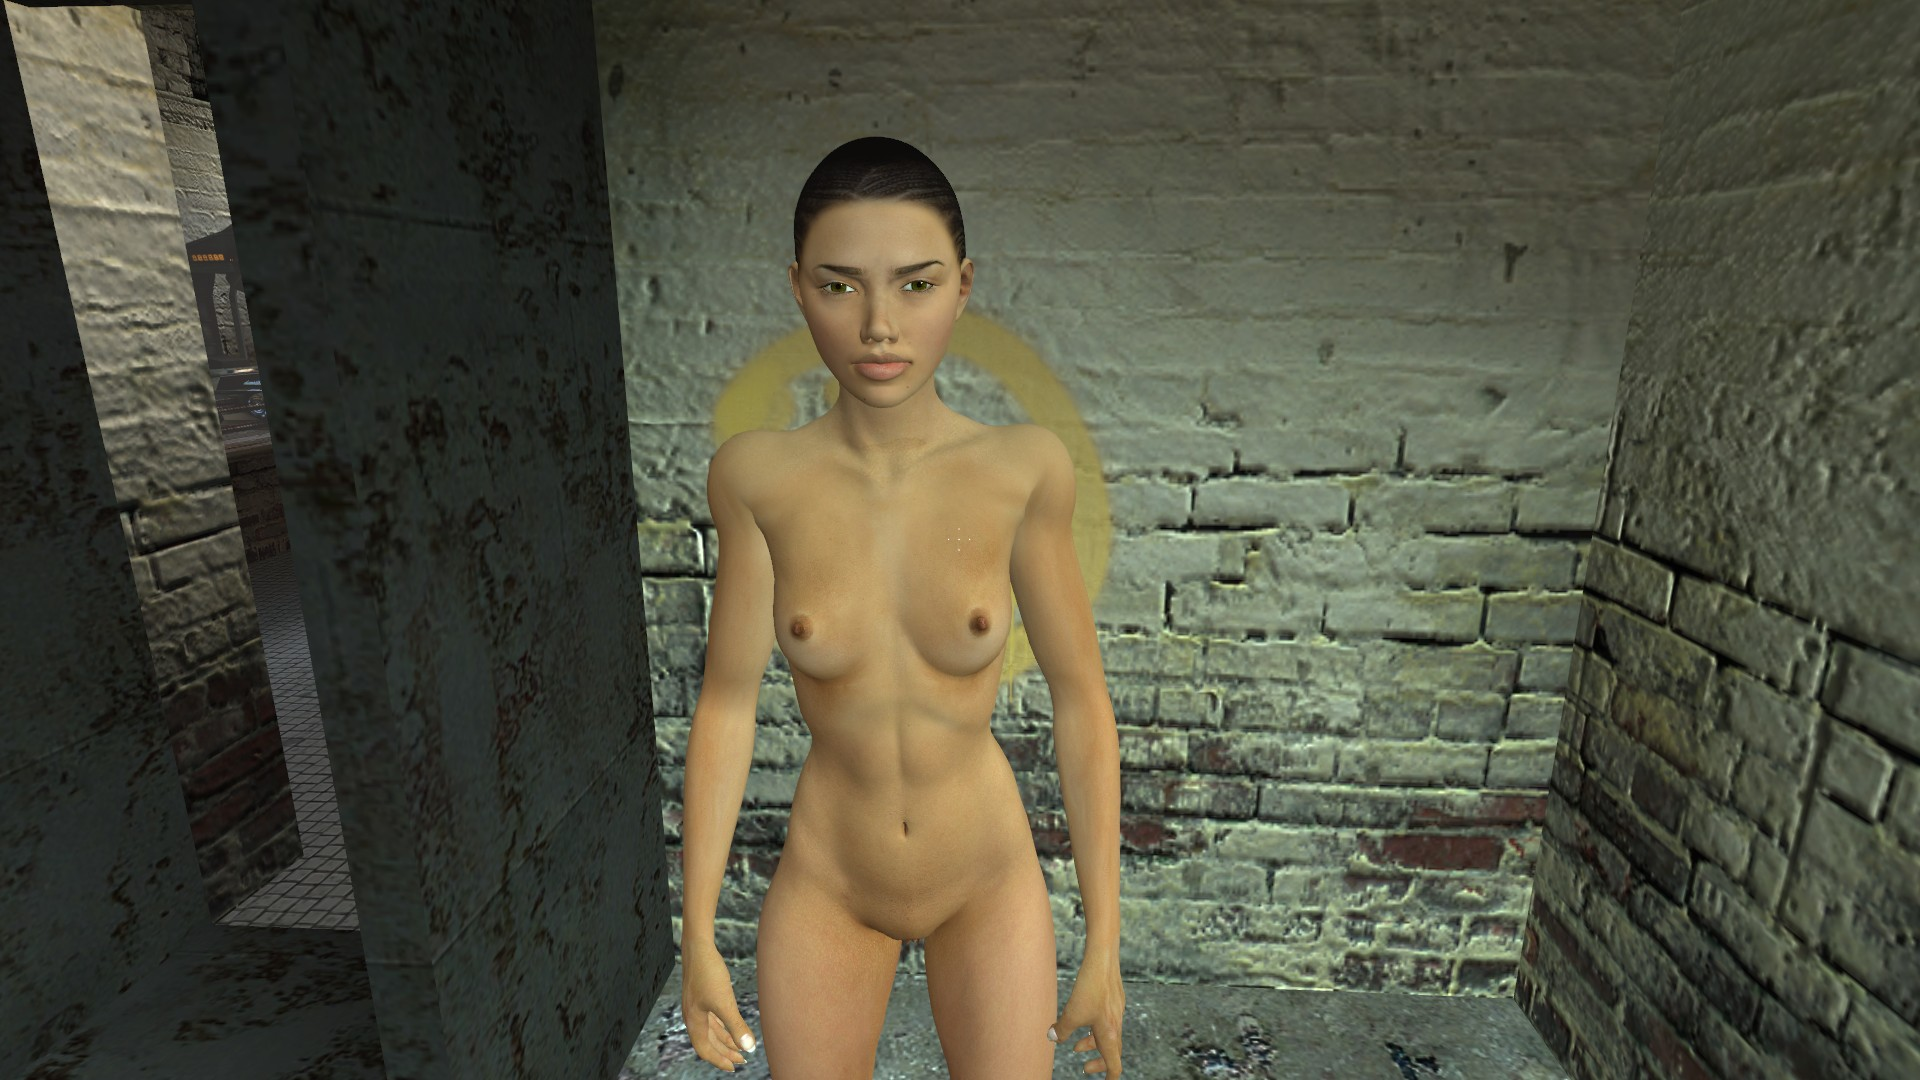 Alyx from hl2 nude nudes streaming